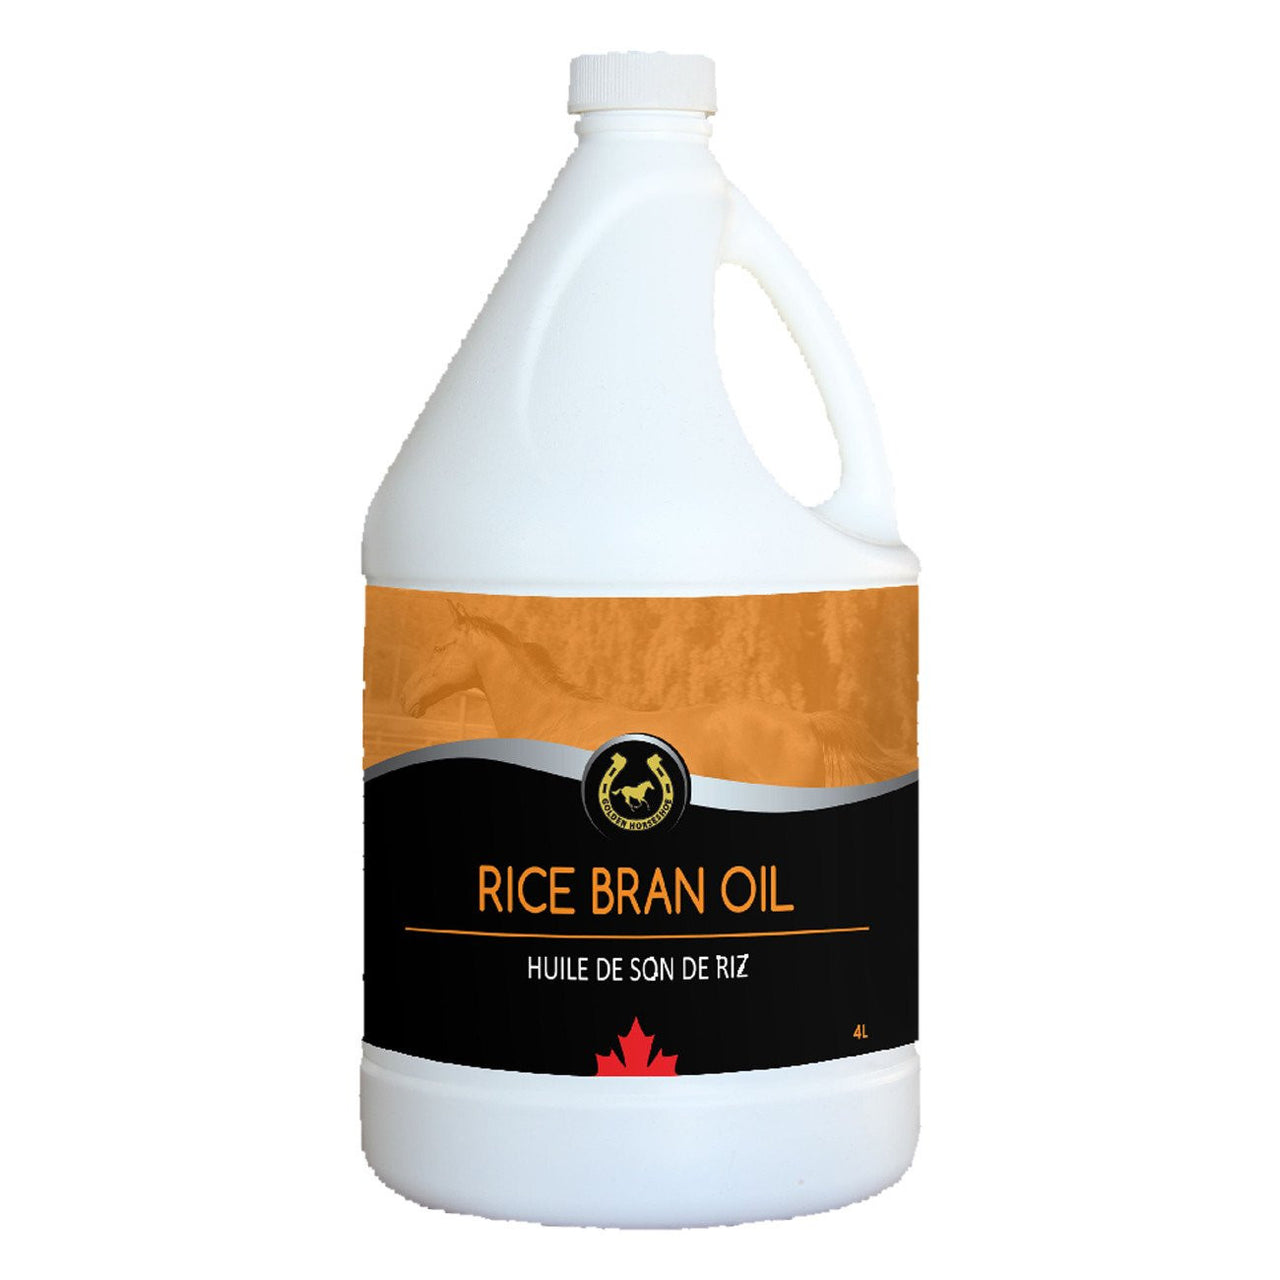 Ghs Rice Bran Oil 4L - Equine Supplements Ghs - Canada